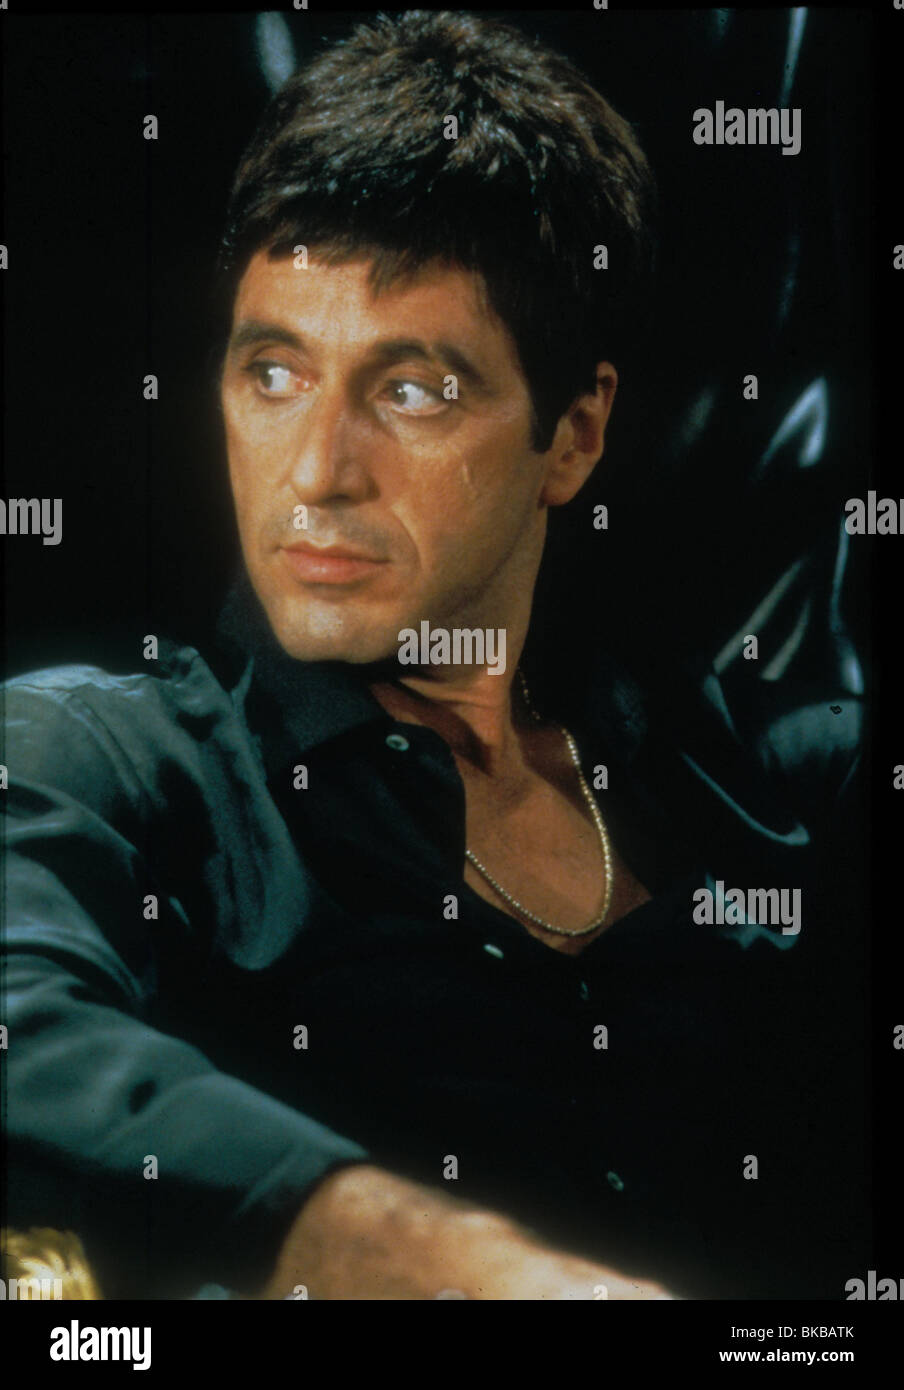 Scarface movie stock photos scarface movie stock images - Scarface images ...